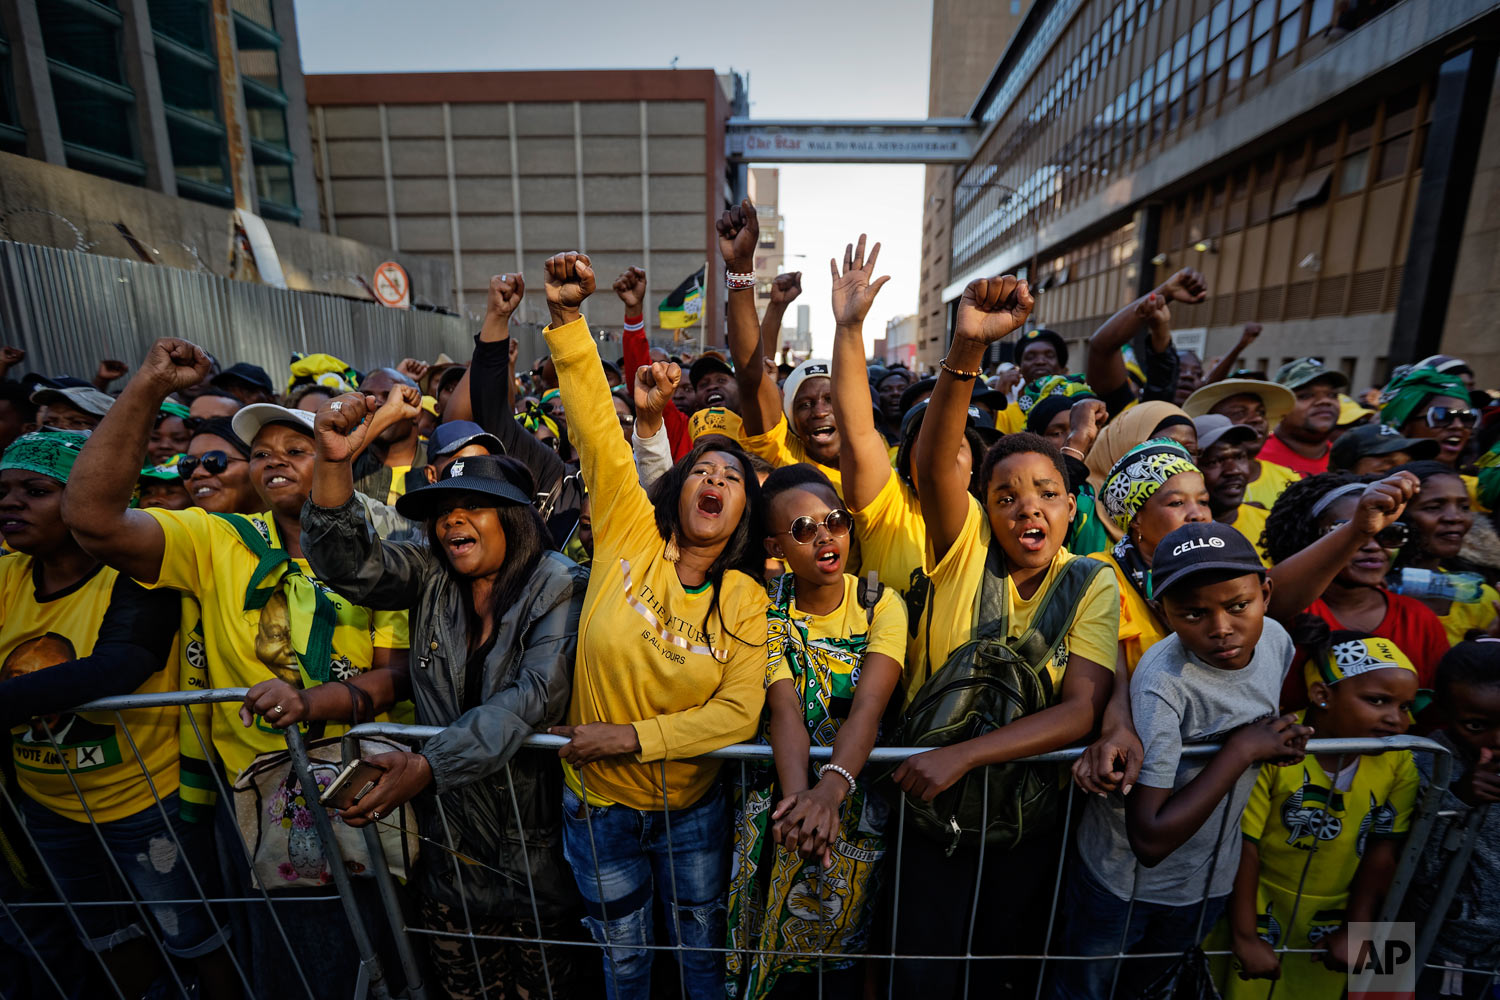 Supporters of the African National Congress (ANC) party cheer during a victory rally in downtown Johannesburg, South Africa, May 12, 2019. (AP Photo/Ben Curtis)